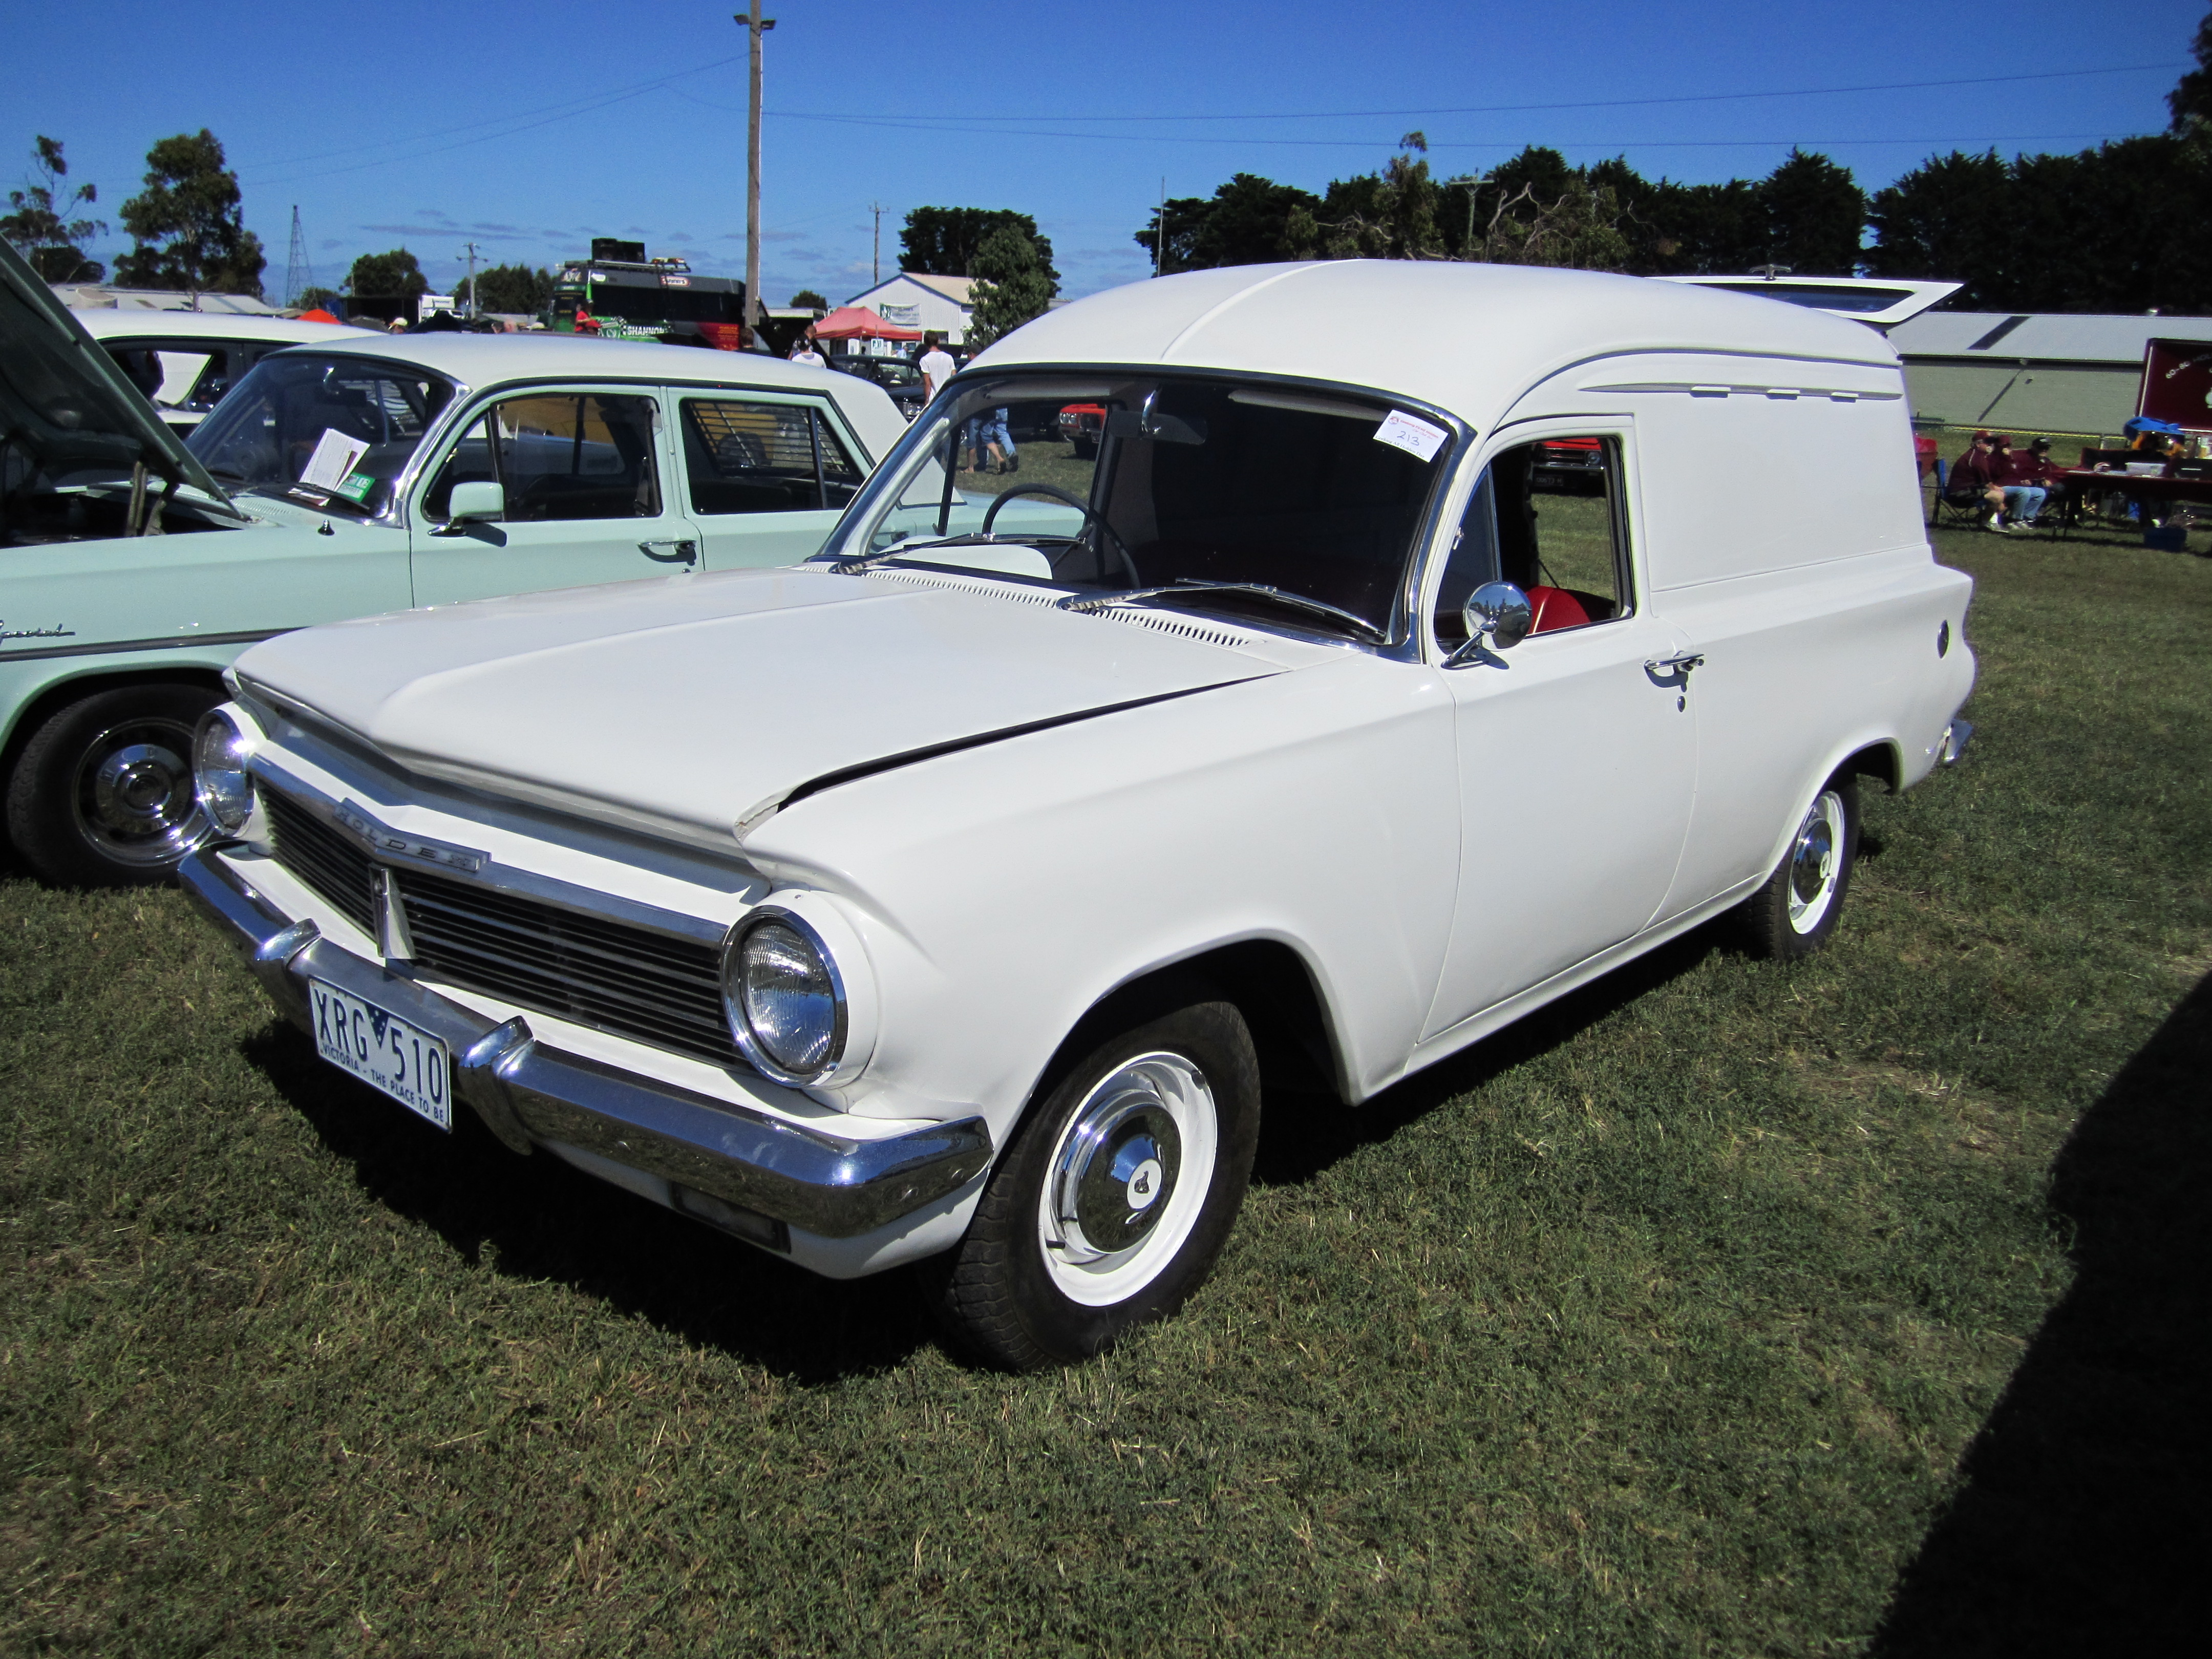 File Holden EH Panel Van furthermore File 1942 Ford Deluxe Coupe in addition Epa Standards together with File 1978 Purvis Eureka Formula 4 besides File 1980 Ford Mustang Ghia Hatchback  14386562021. on 3 cyl engines